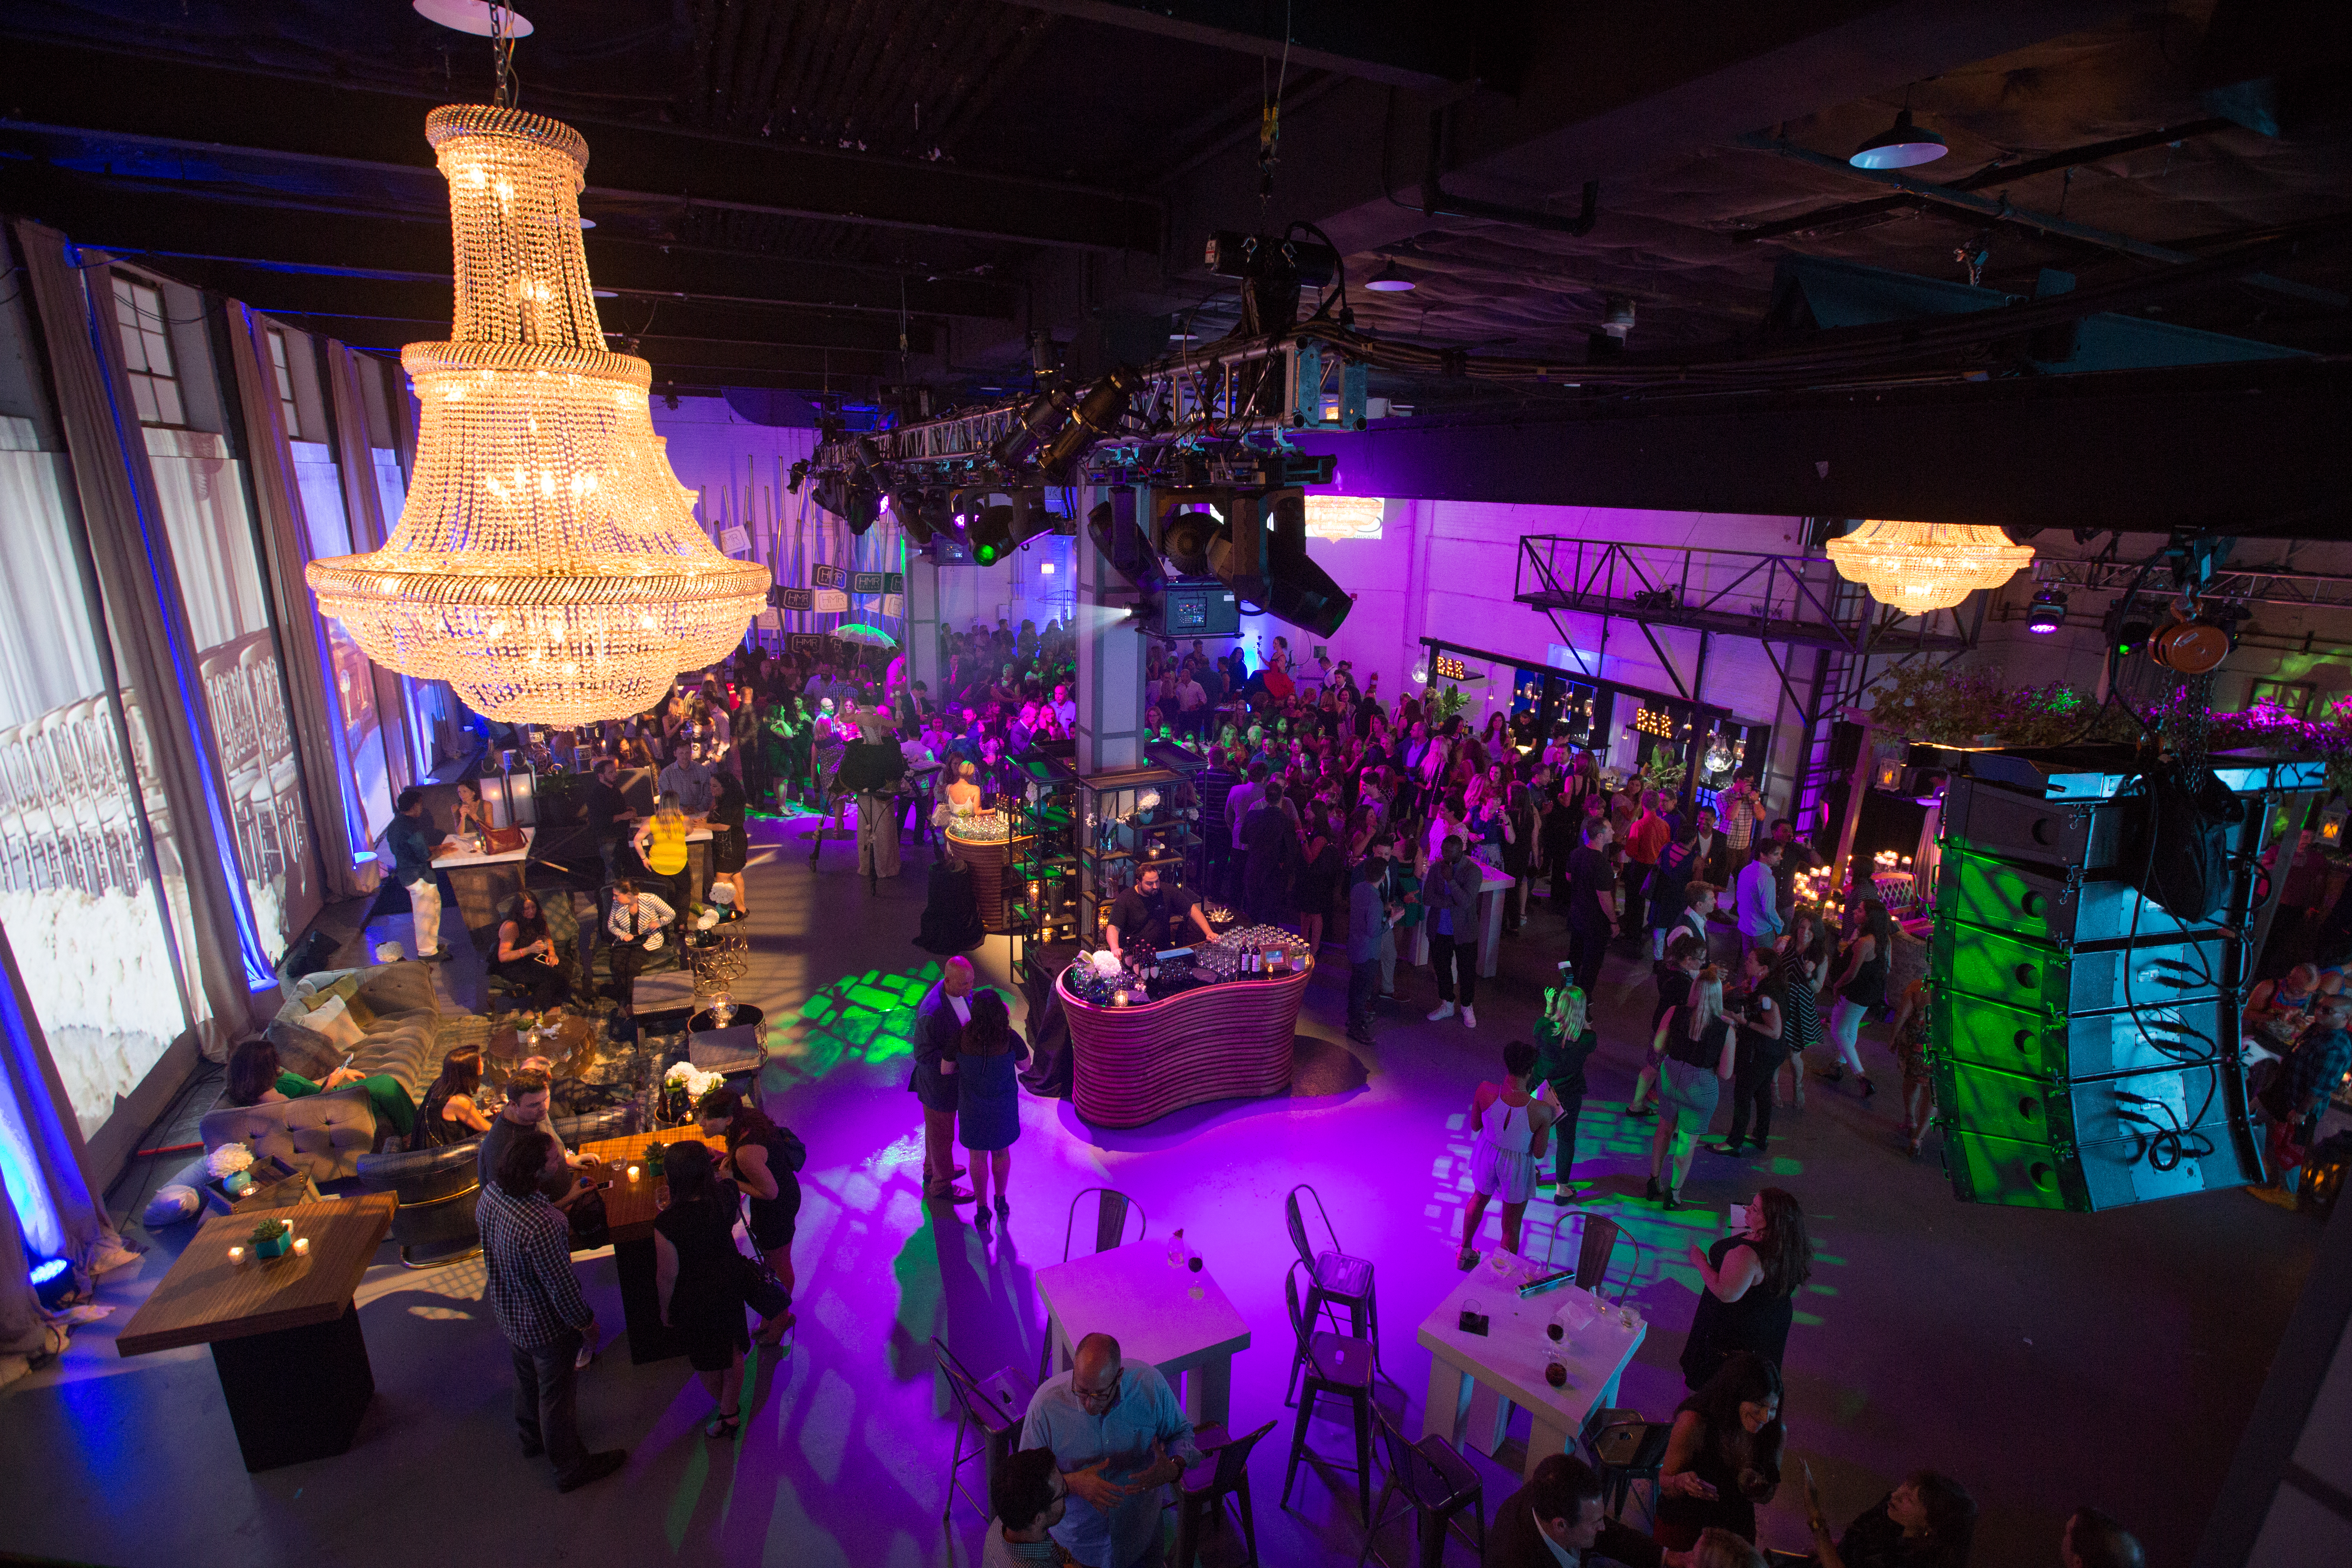 A shot taken from above this website launch party captures the flow of the event throughout the night.